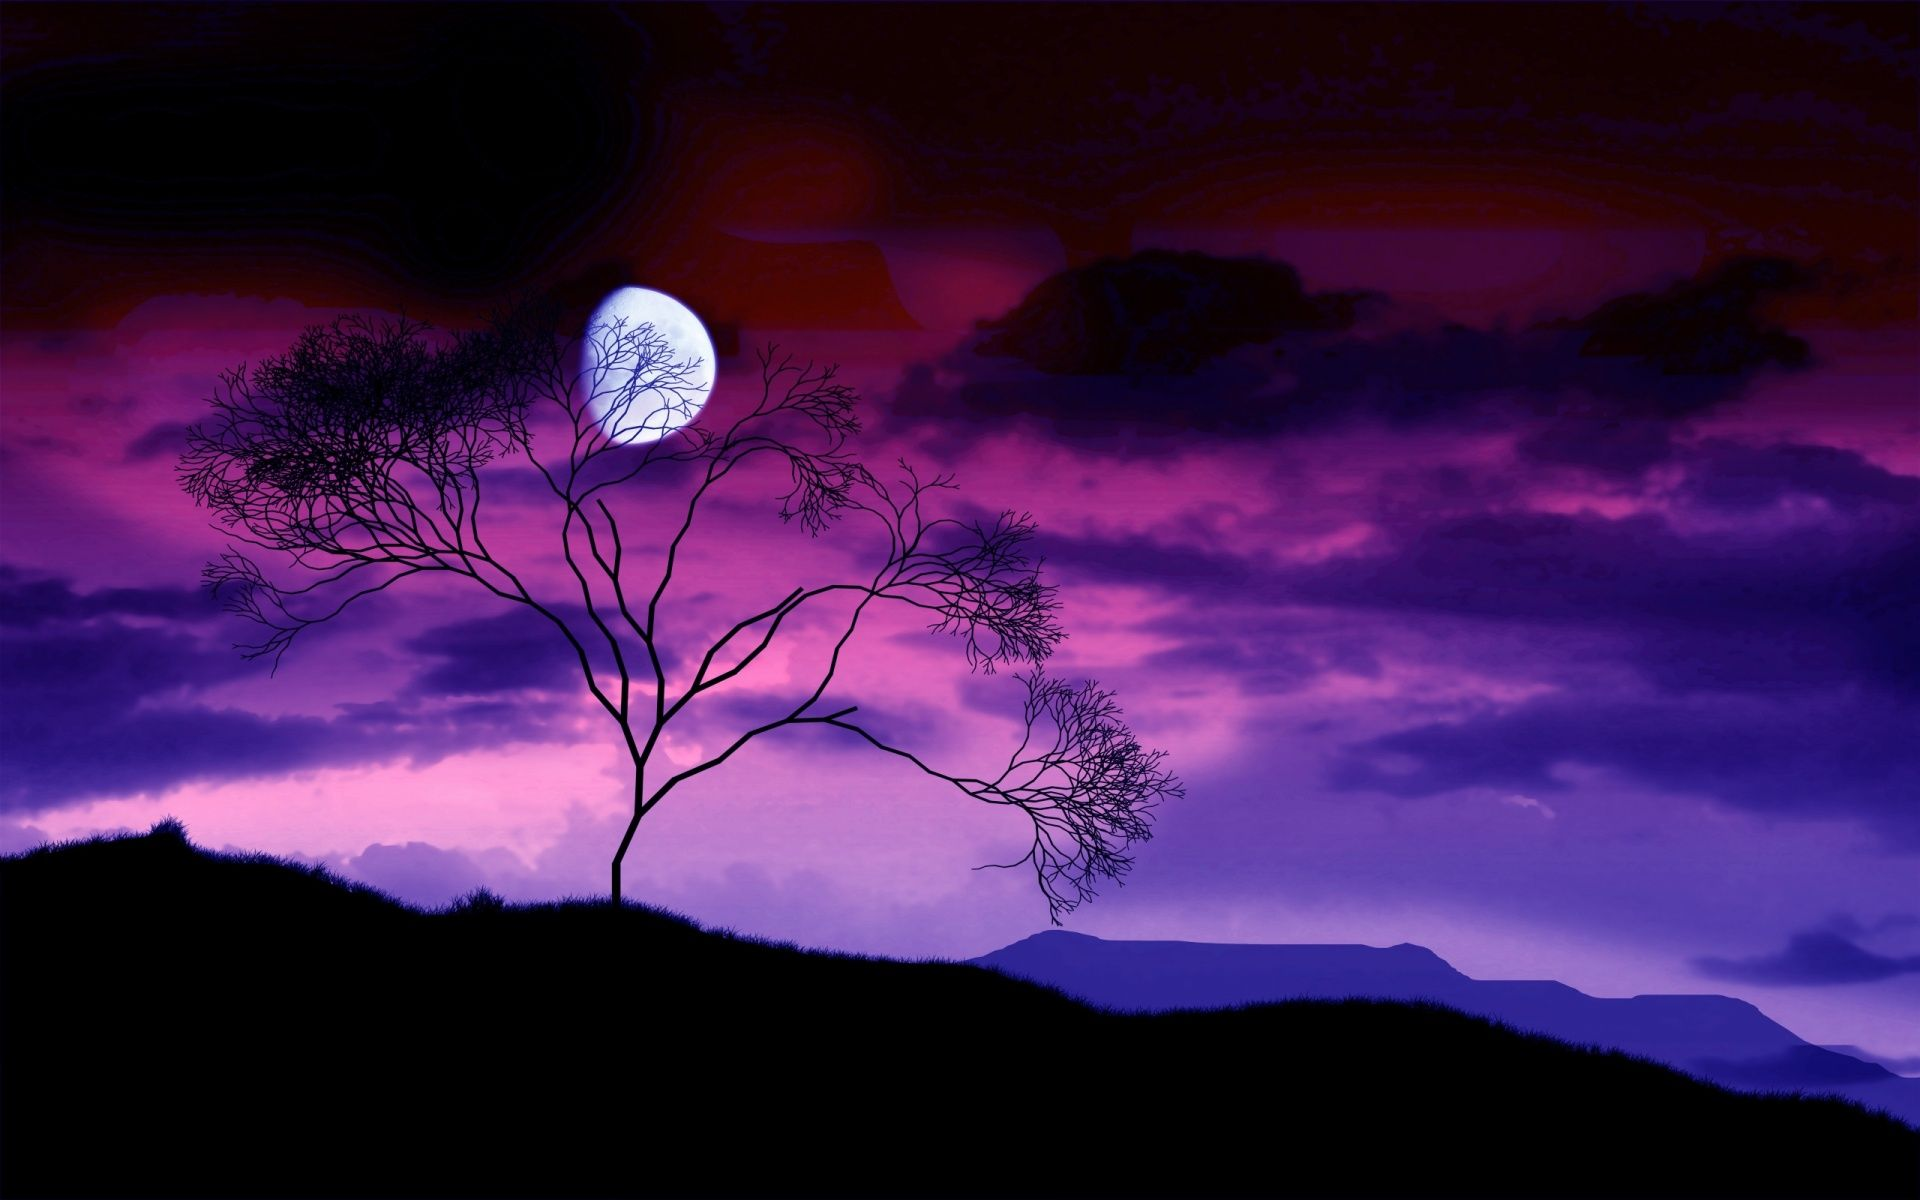 Scenic Pictures Myspace Nature Graphics Backgrounds Scenic Viewed Moonlight Top Beautiful Night Sky Night Sky Wallpaper Beautiful Moon